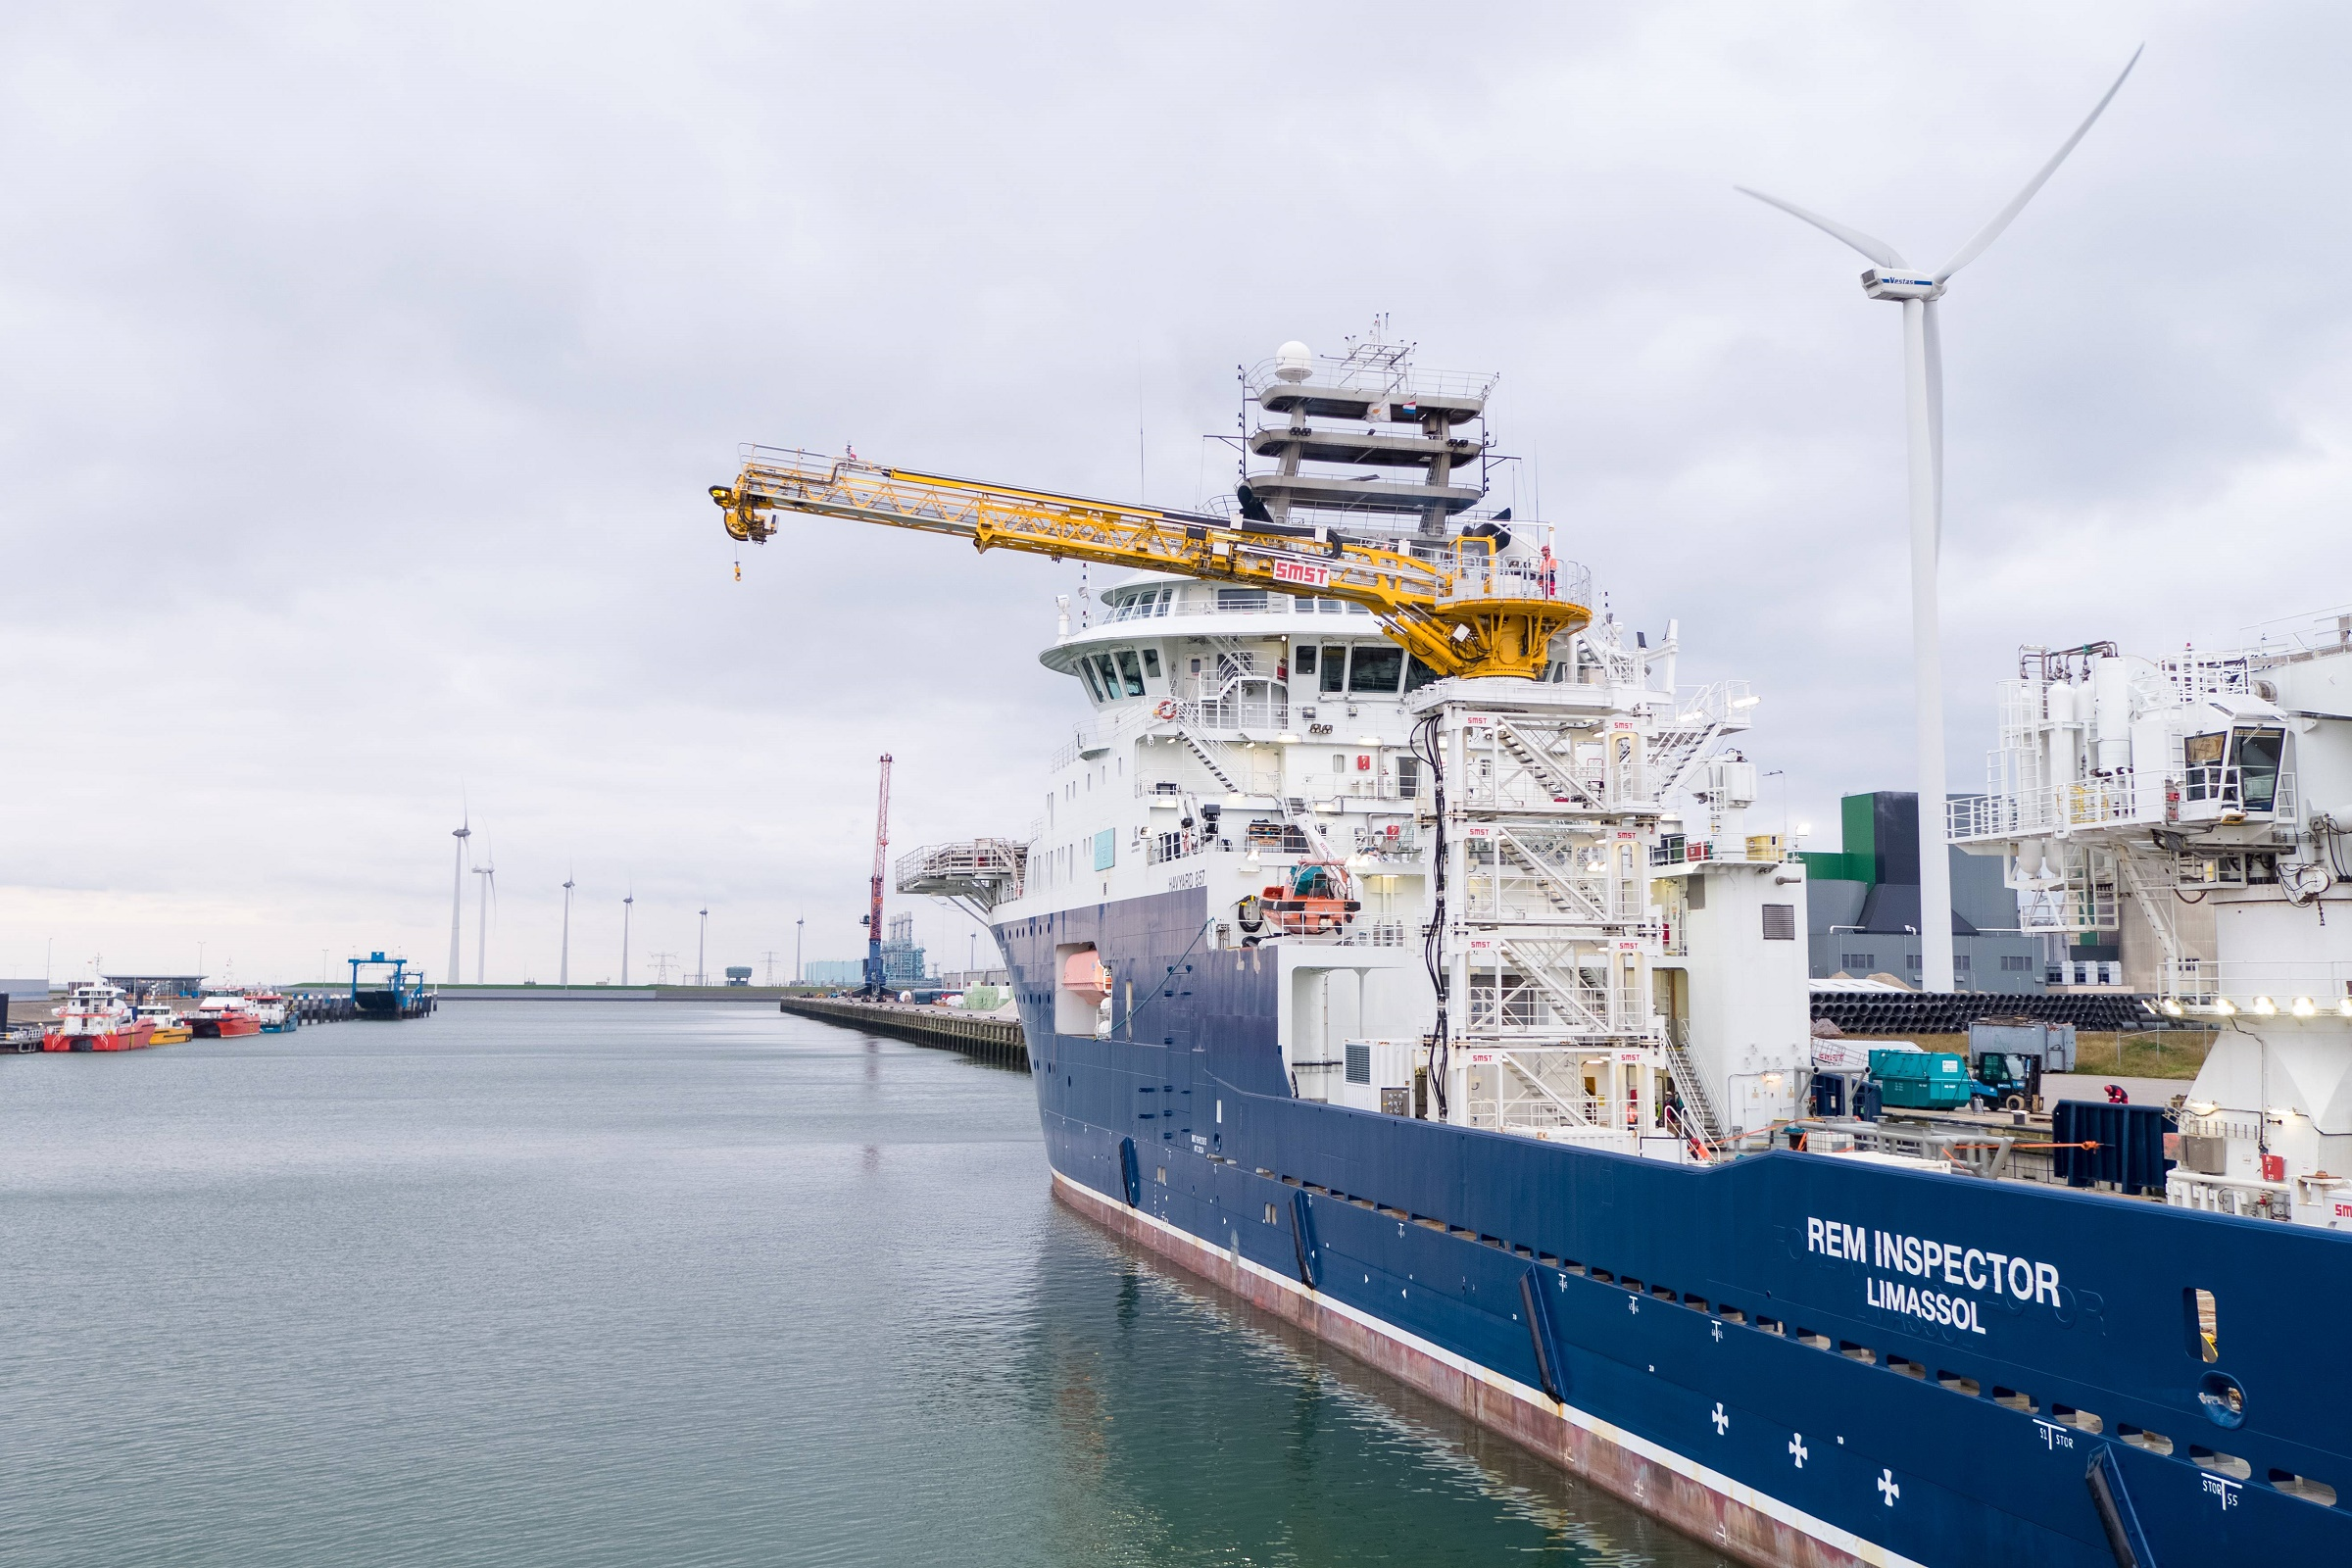 SMST's newest rental gangway in operation for Rem Offshore